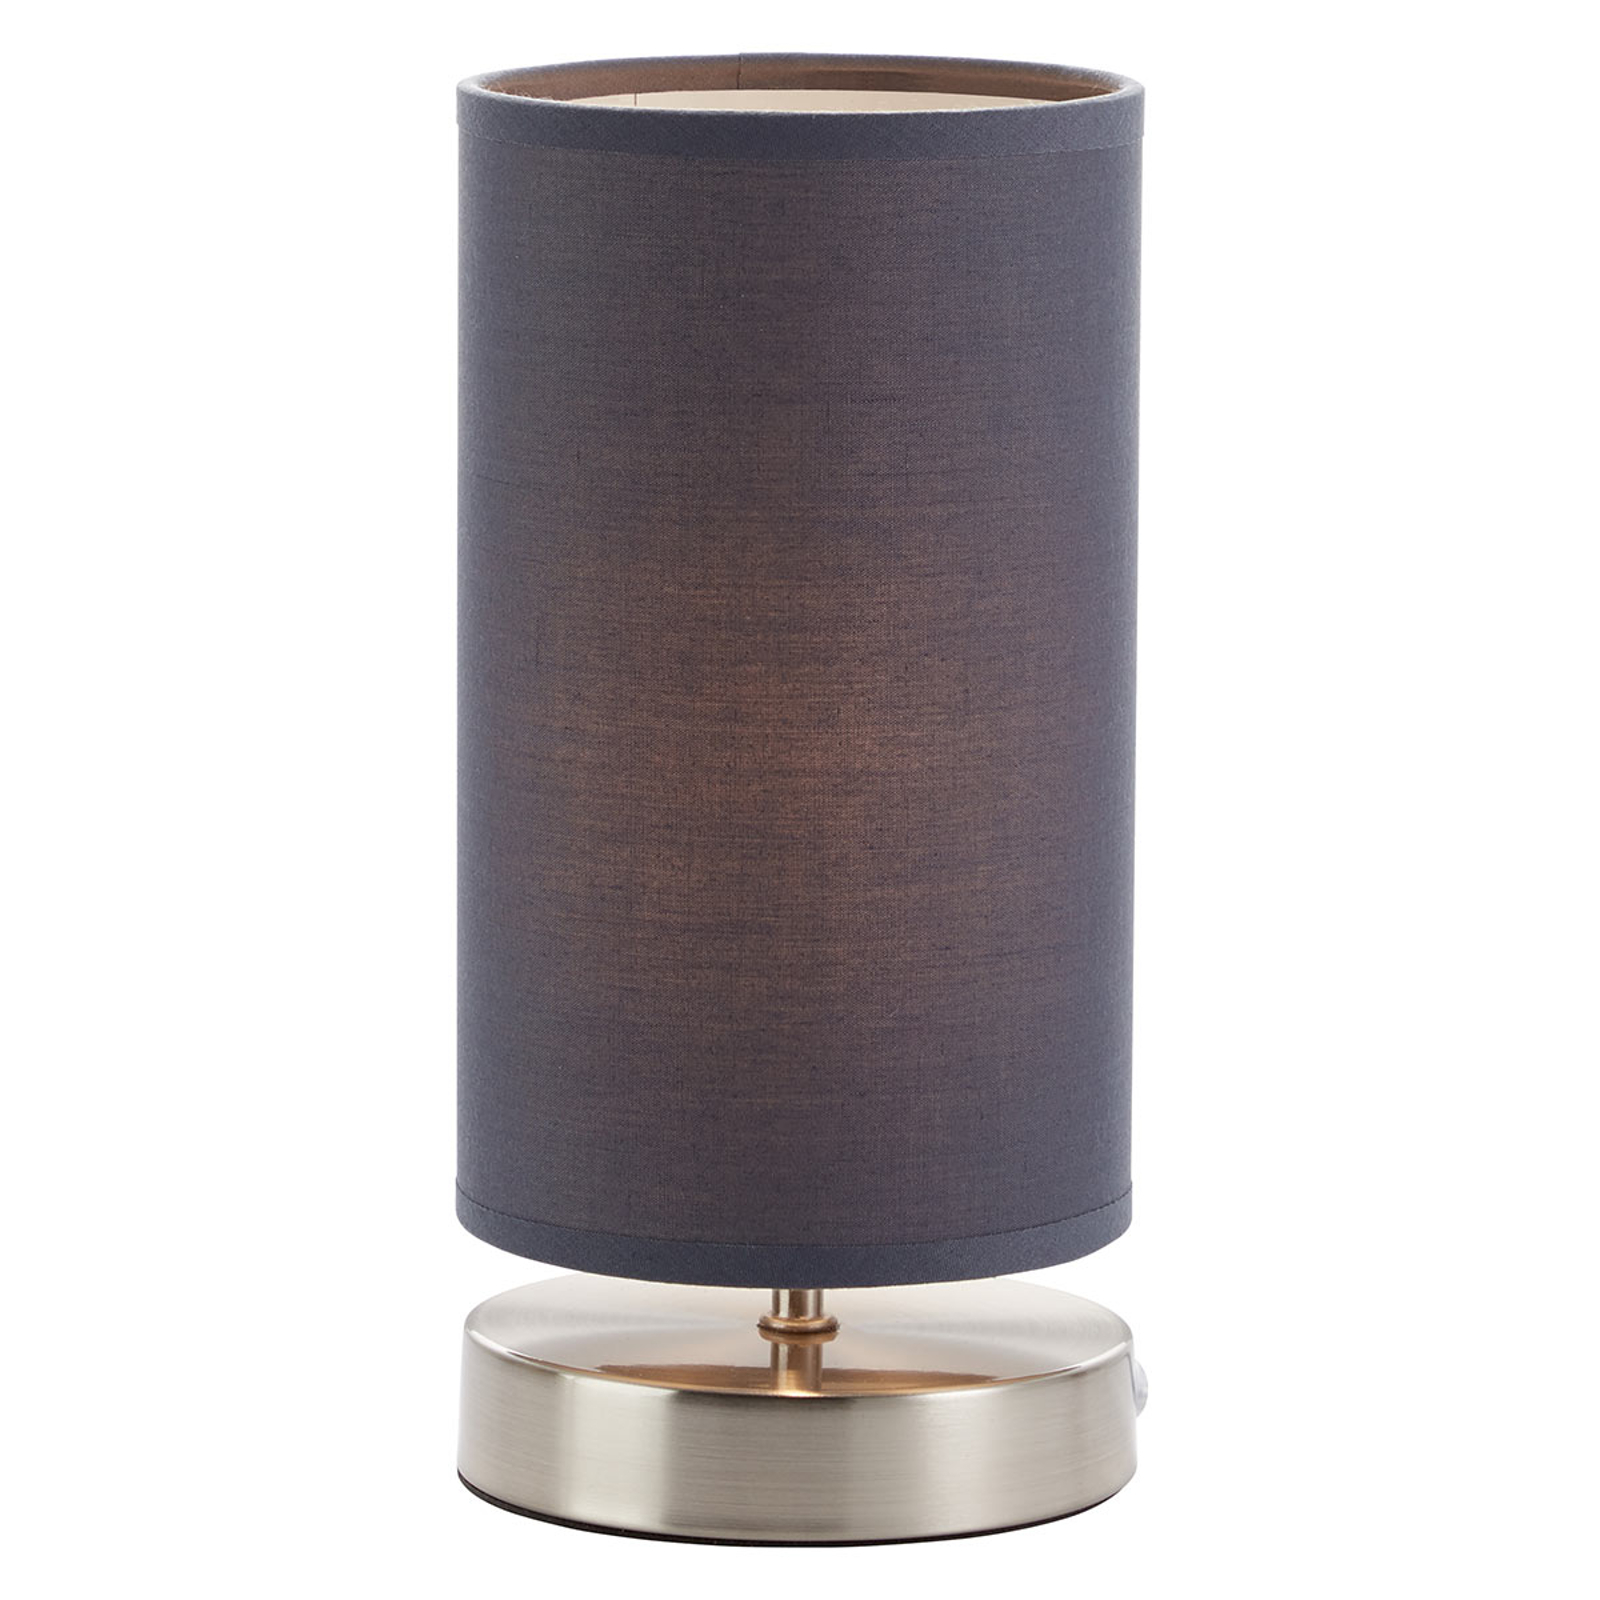 Table lamp Claire with grey fabric lampshade_1508859_1